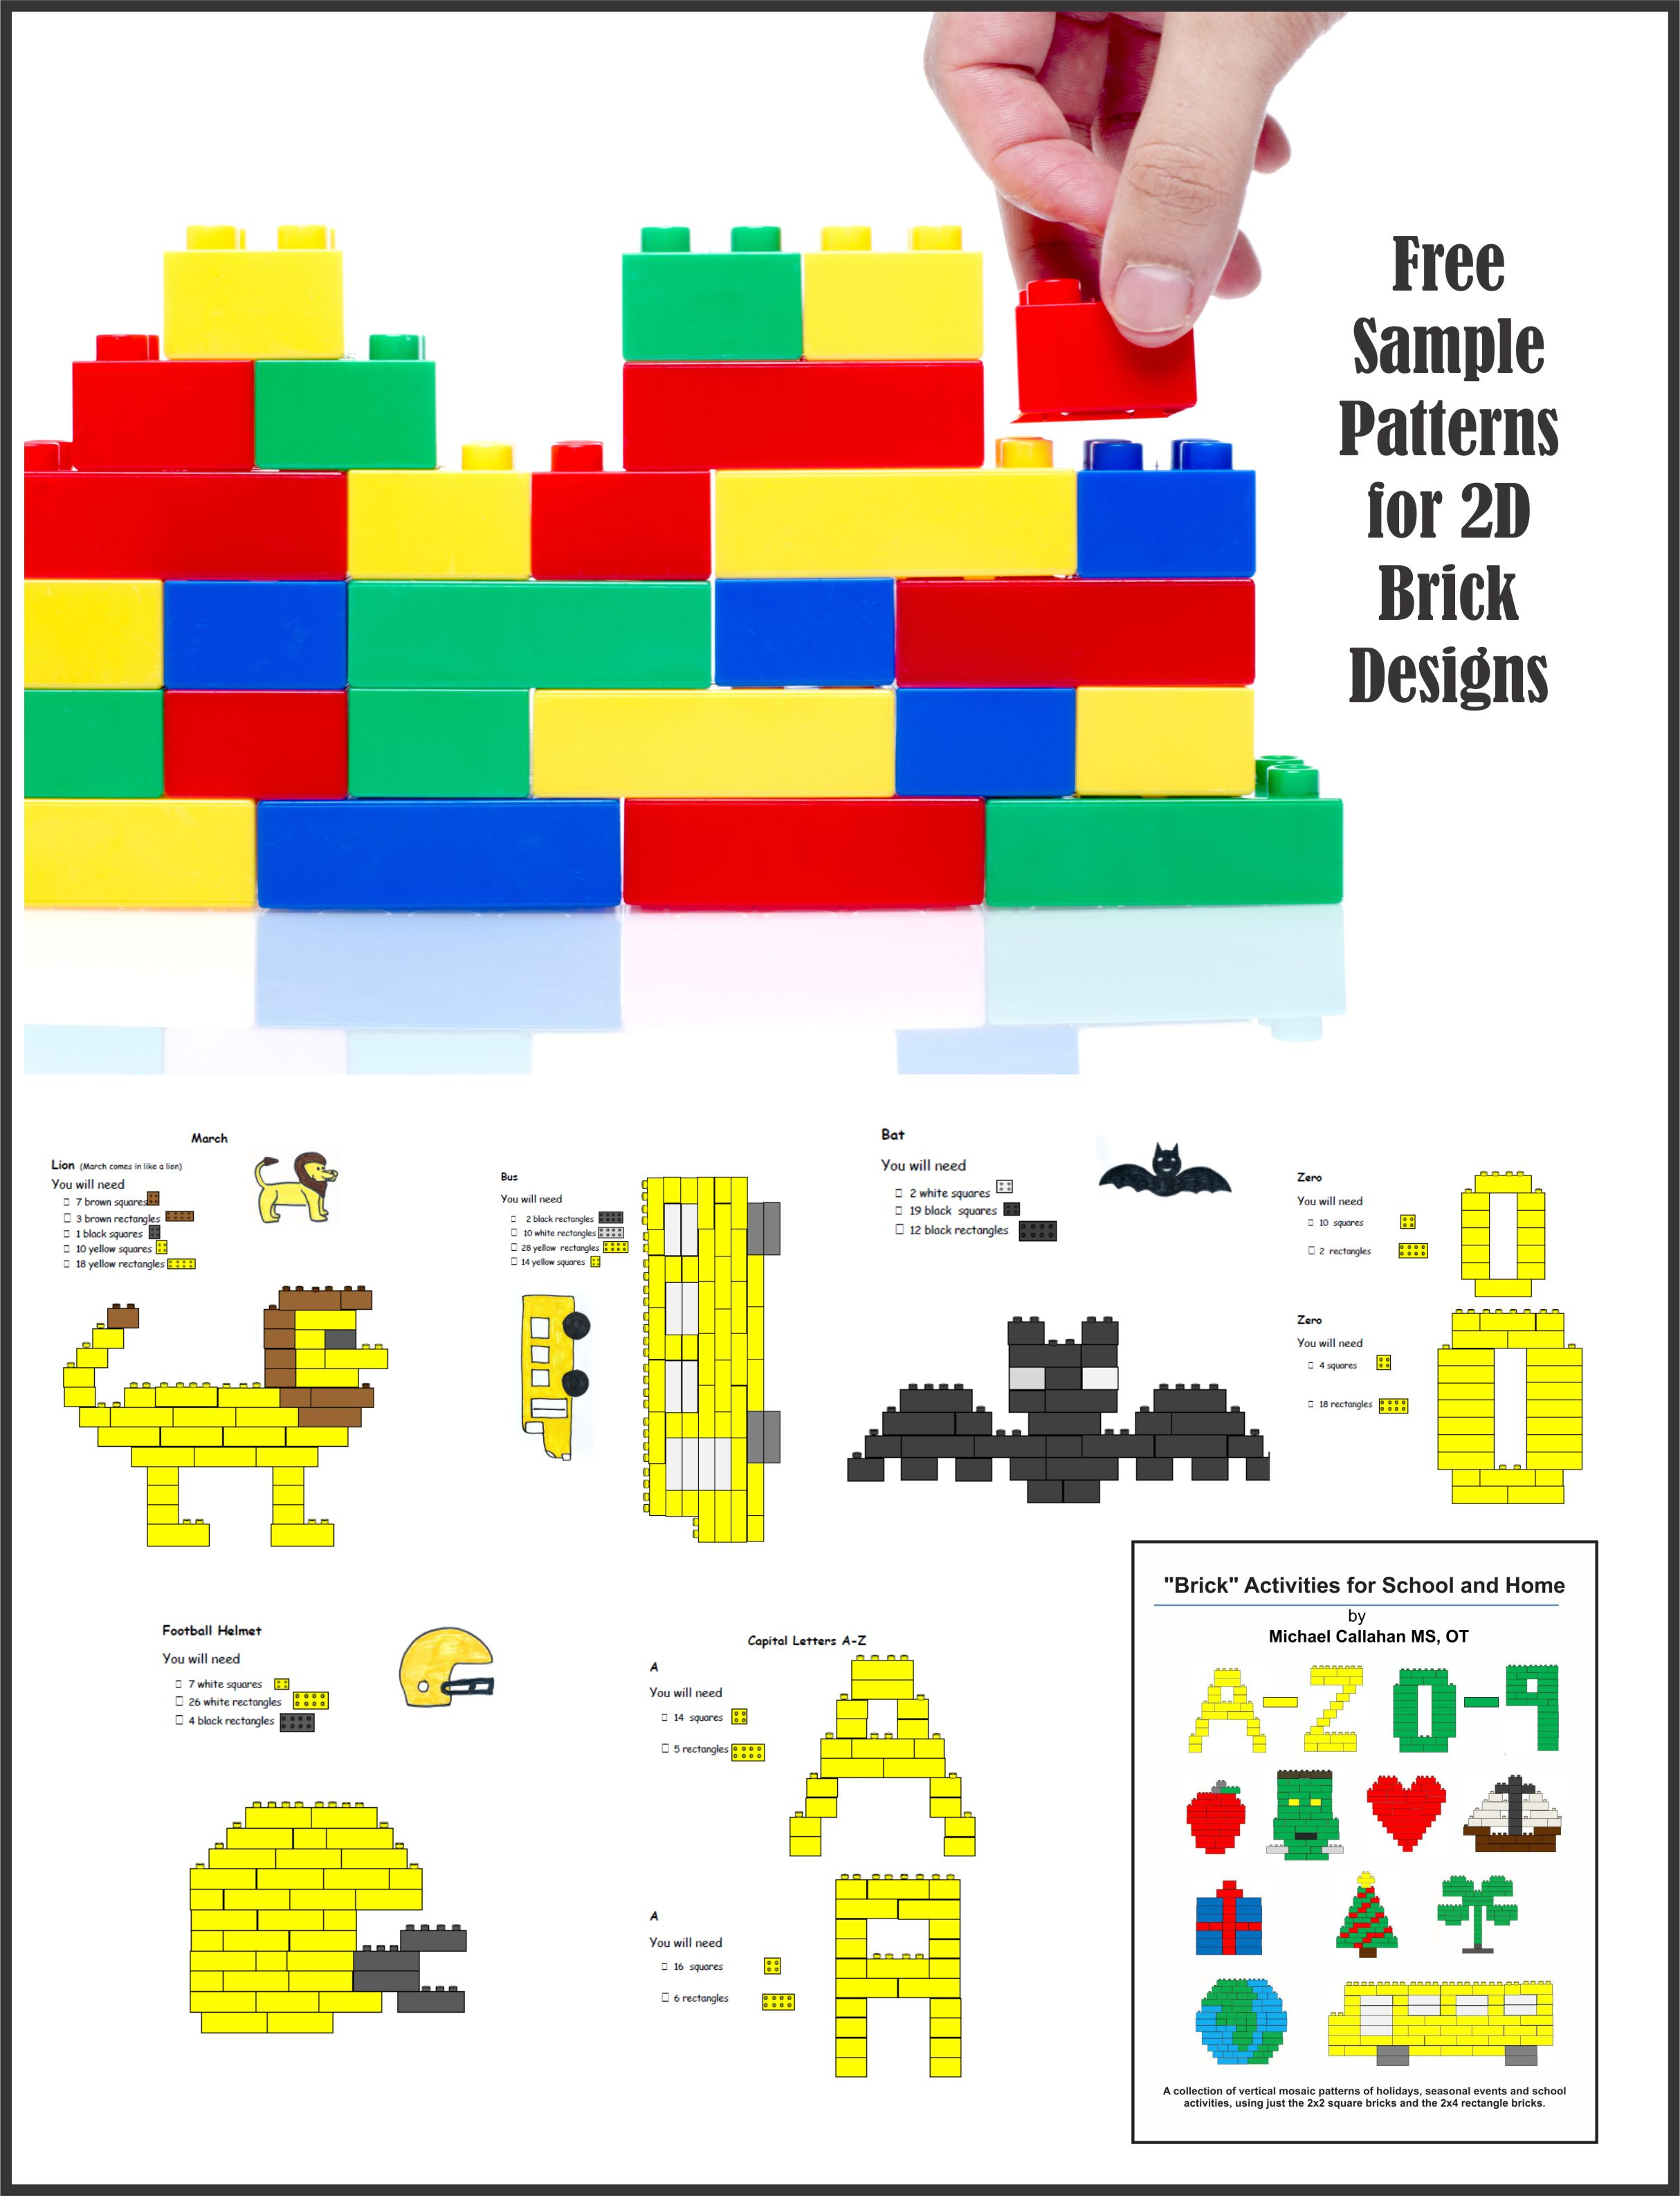 Brick Design Activity Pages for School and Home - Your Therapy Source